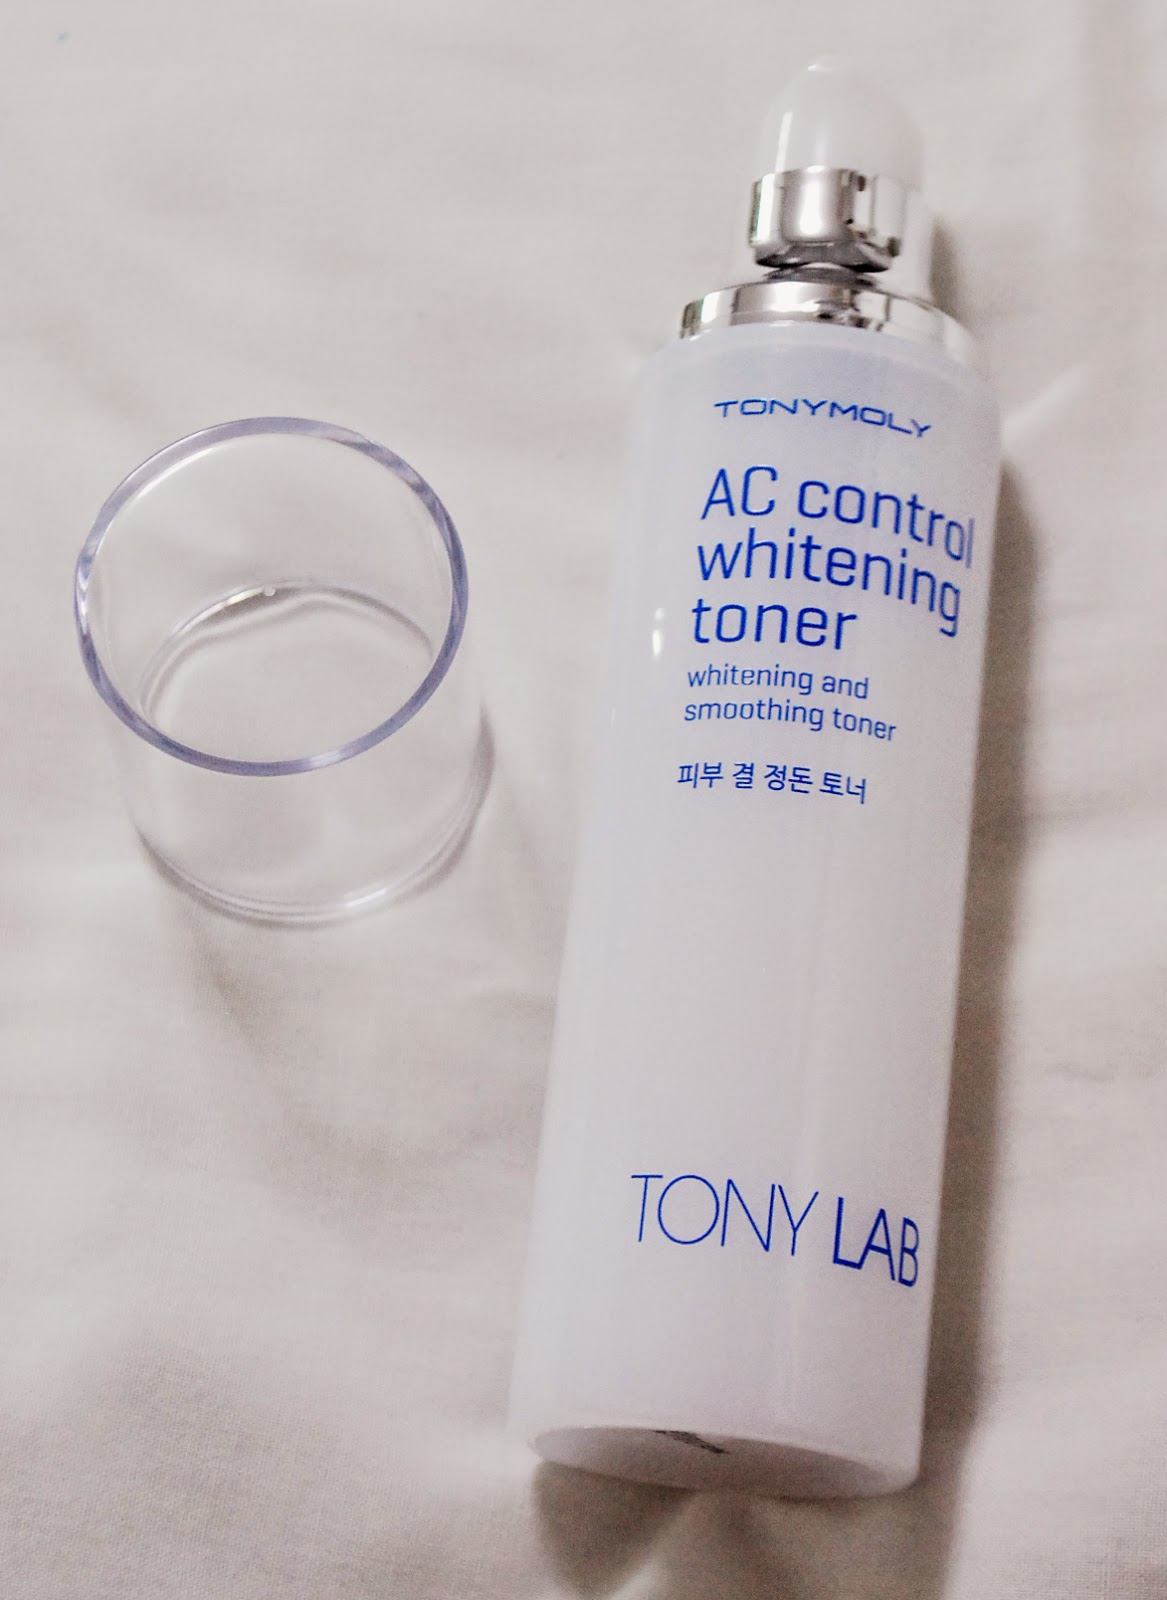 Peachy Pink Sisters Tony Moly Lab Ac Control Whitening Toner Berrianne Cream I Love The Packaging It Looks Very Clean And Classy Pump Makes Dispensing Easy As Well